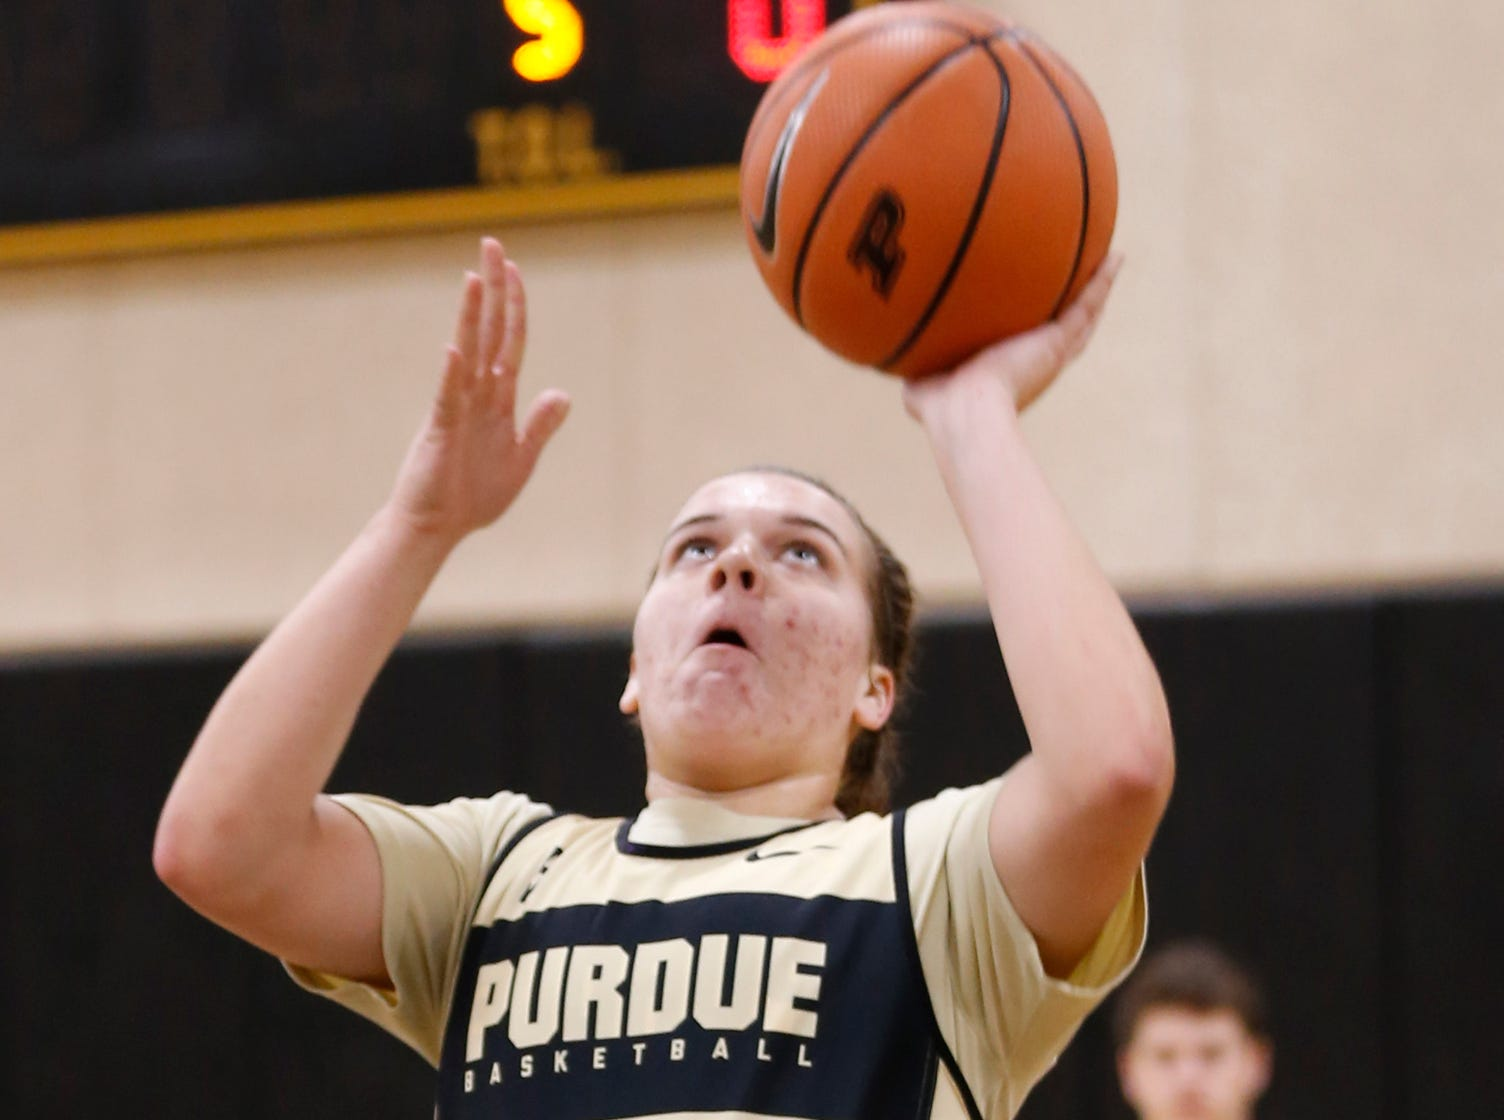 Cassidy Hardin with a layup during Purdue women's basketball practice Wednesday, September 26, 2018, at Cardinal Court in Mackey Arena.